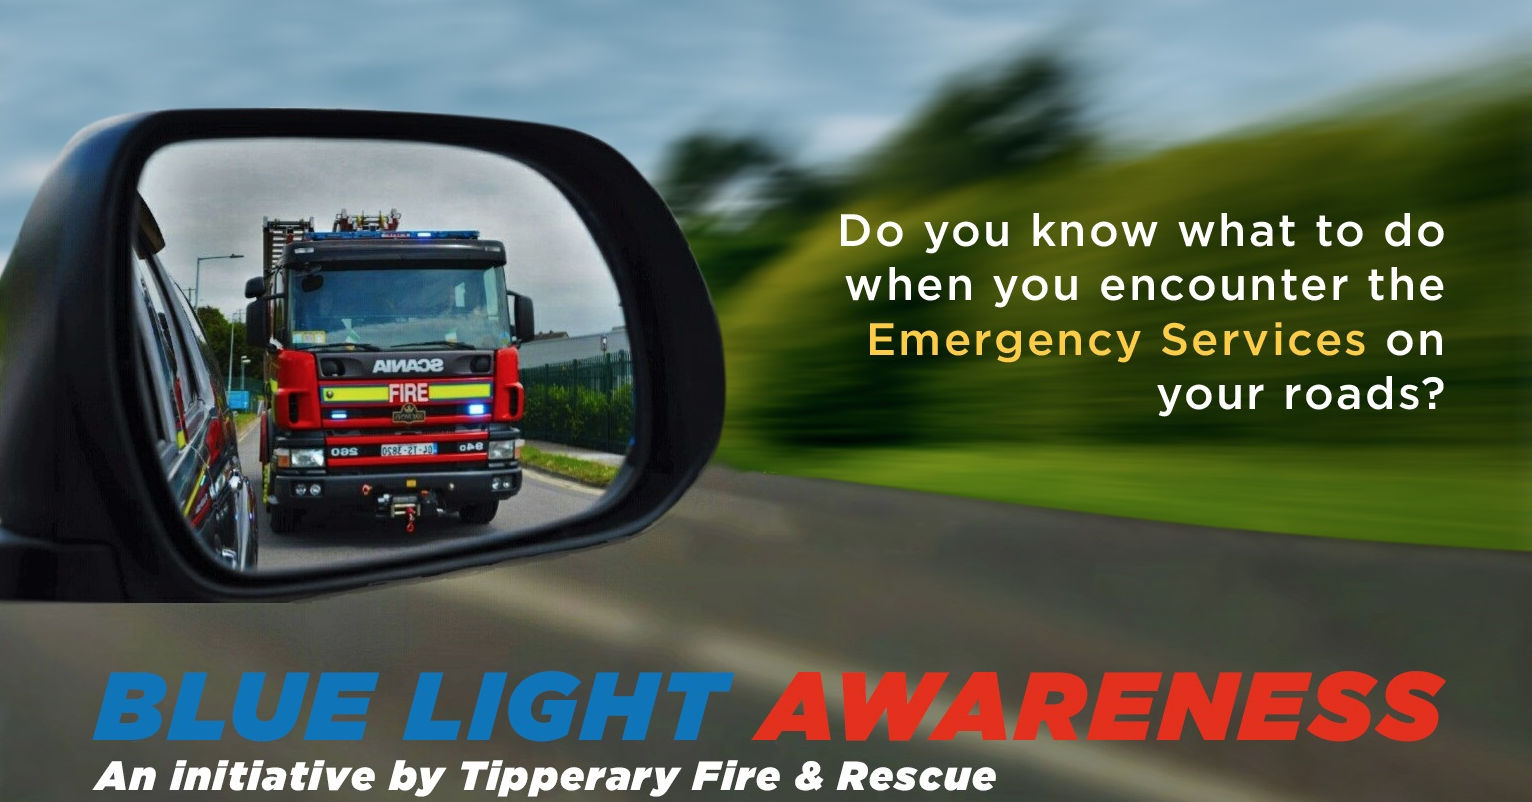 BLUE LIGHT AWARENESS